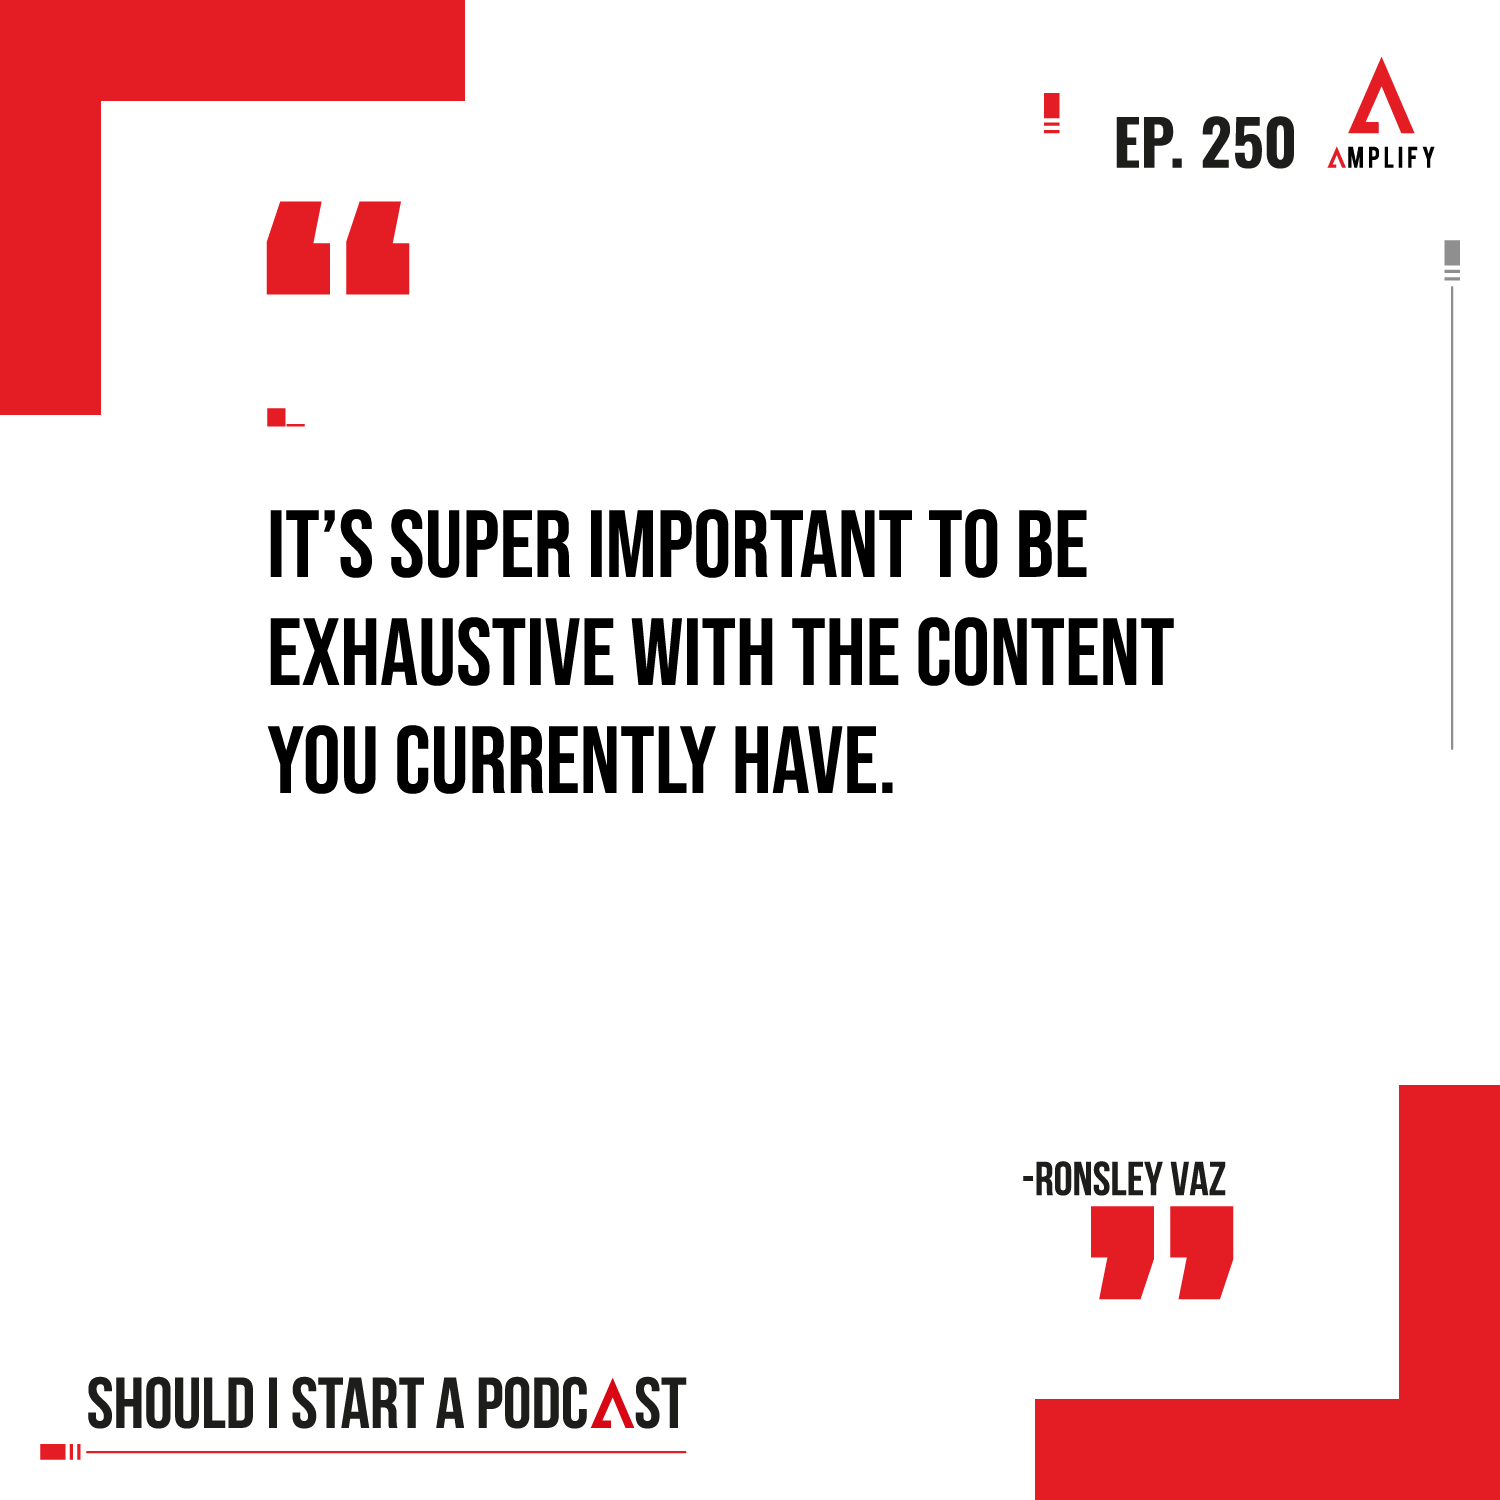 Quote: It's super important to be exhaustive with the content you currently have.